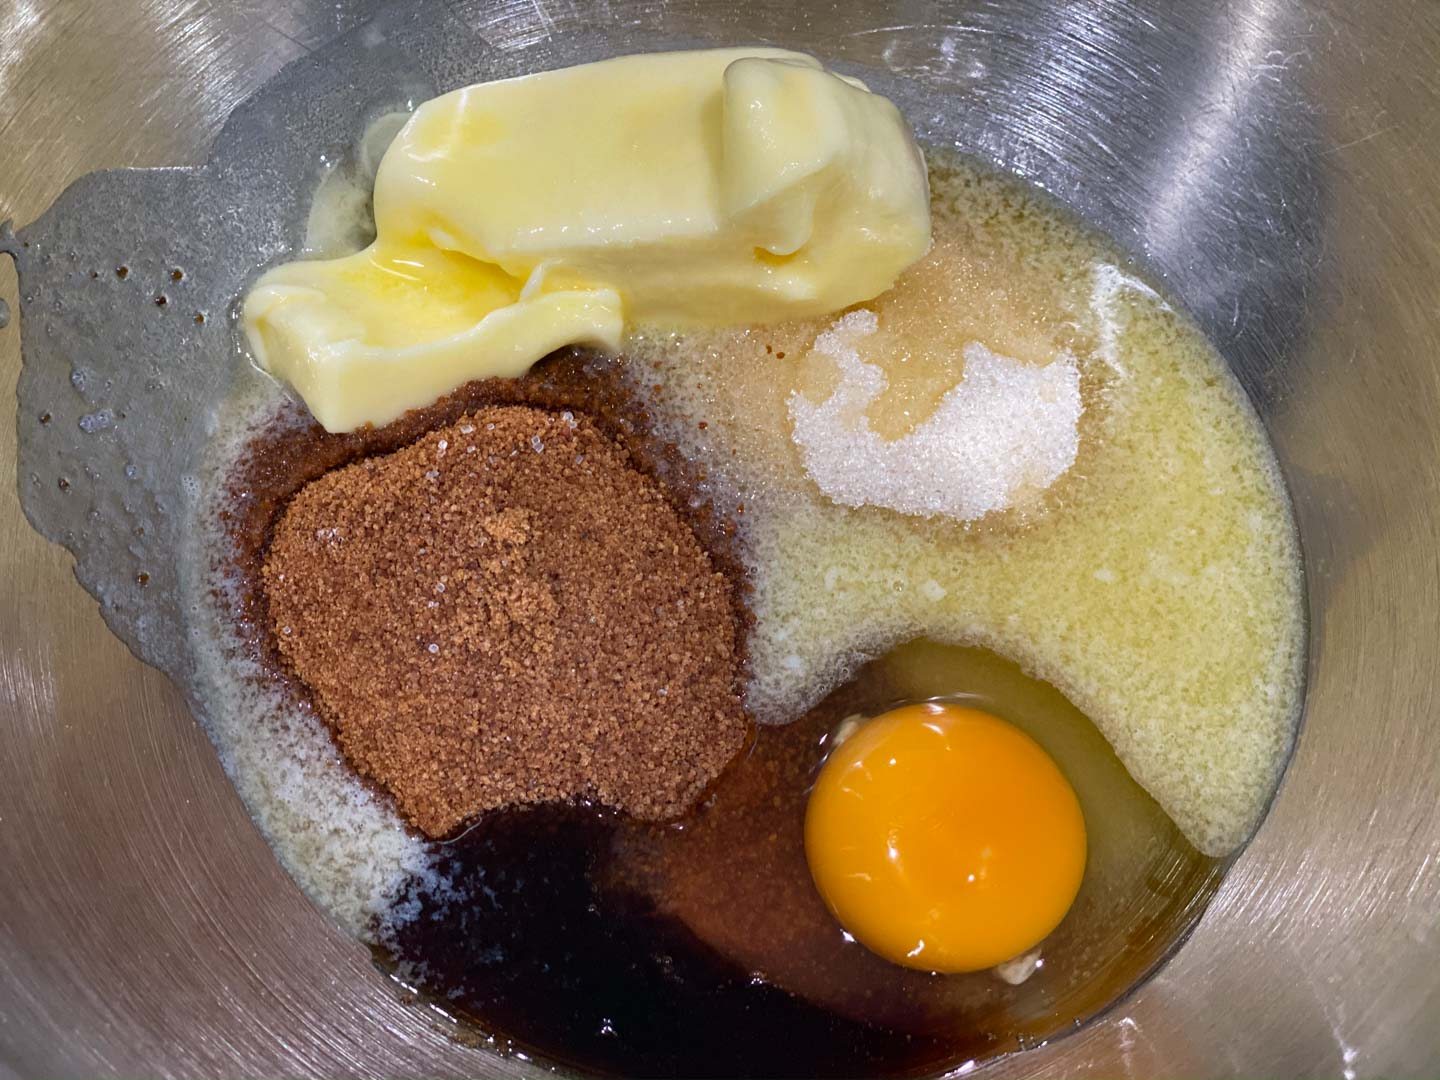 Sugar, Coconut sugar, egg, butter, and vanilla in a mixing bowl.